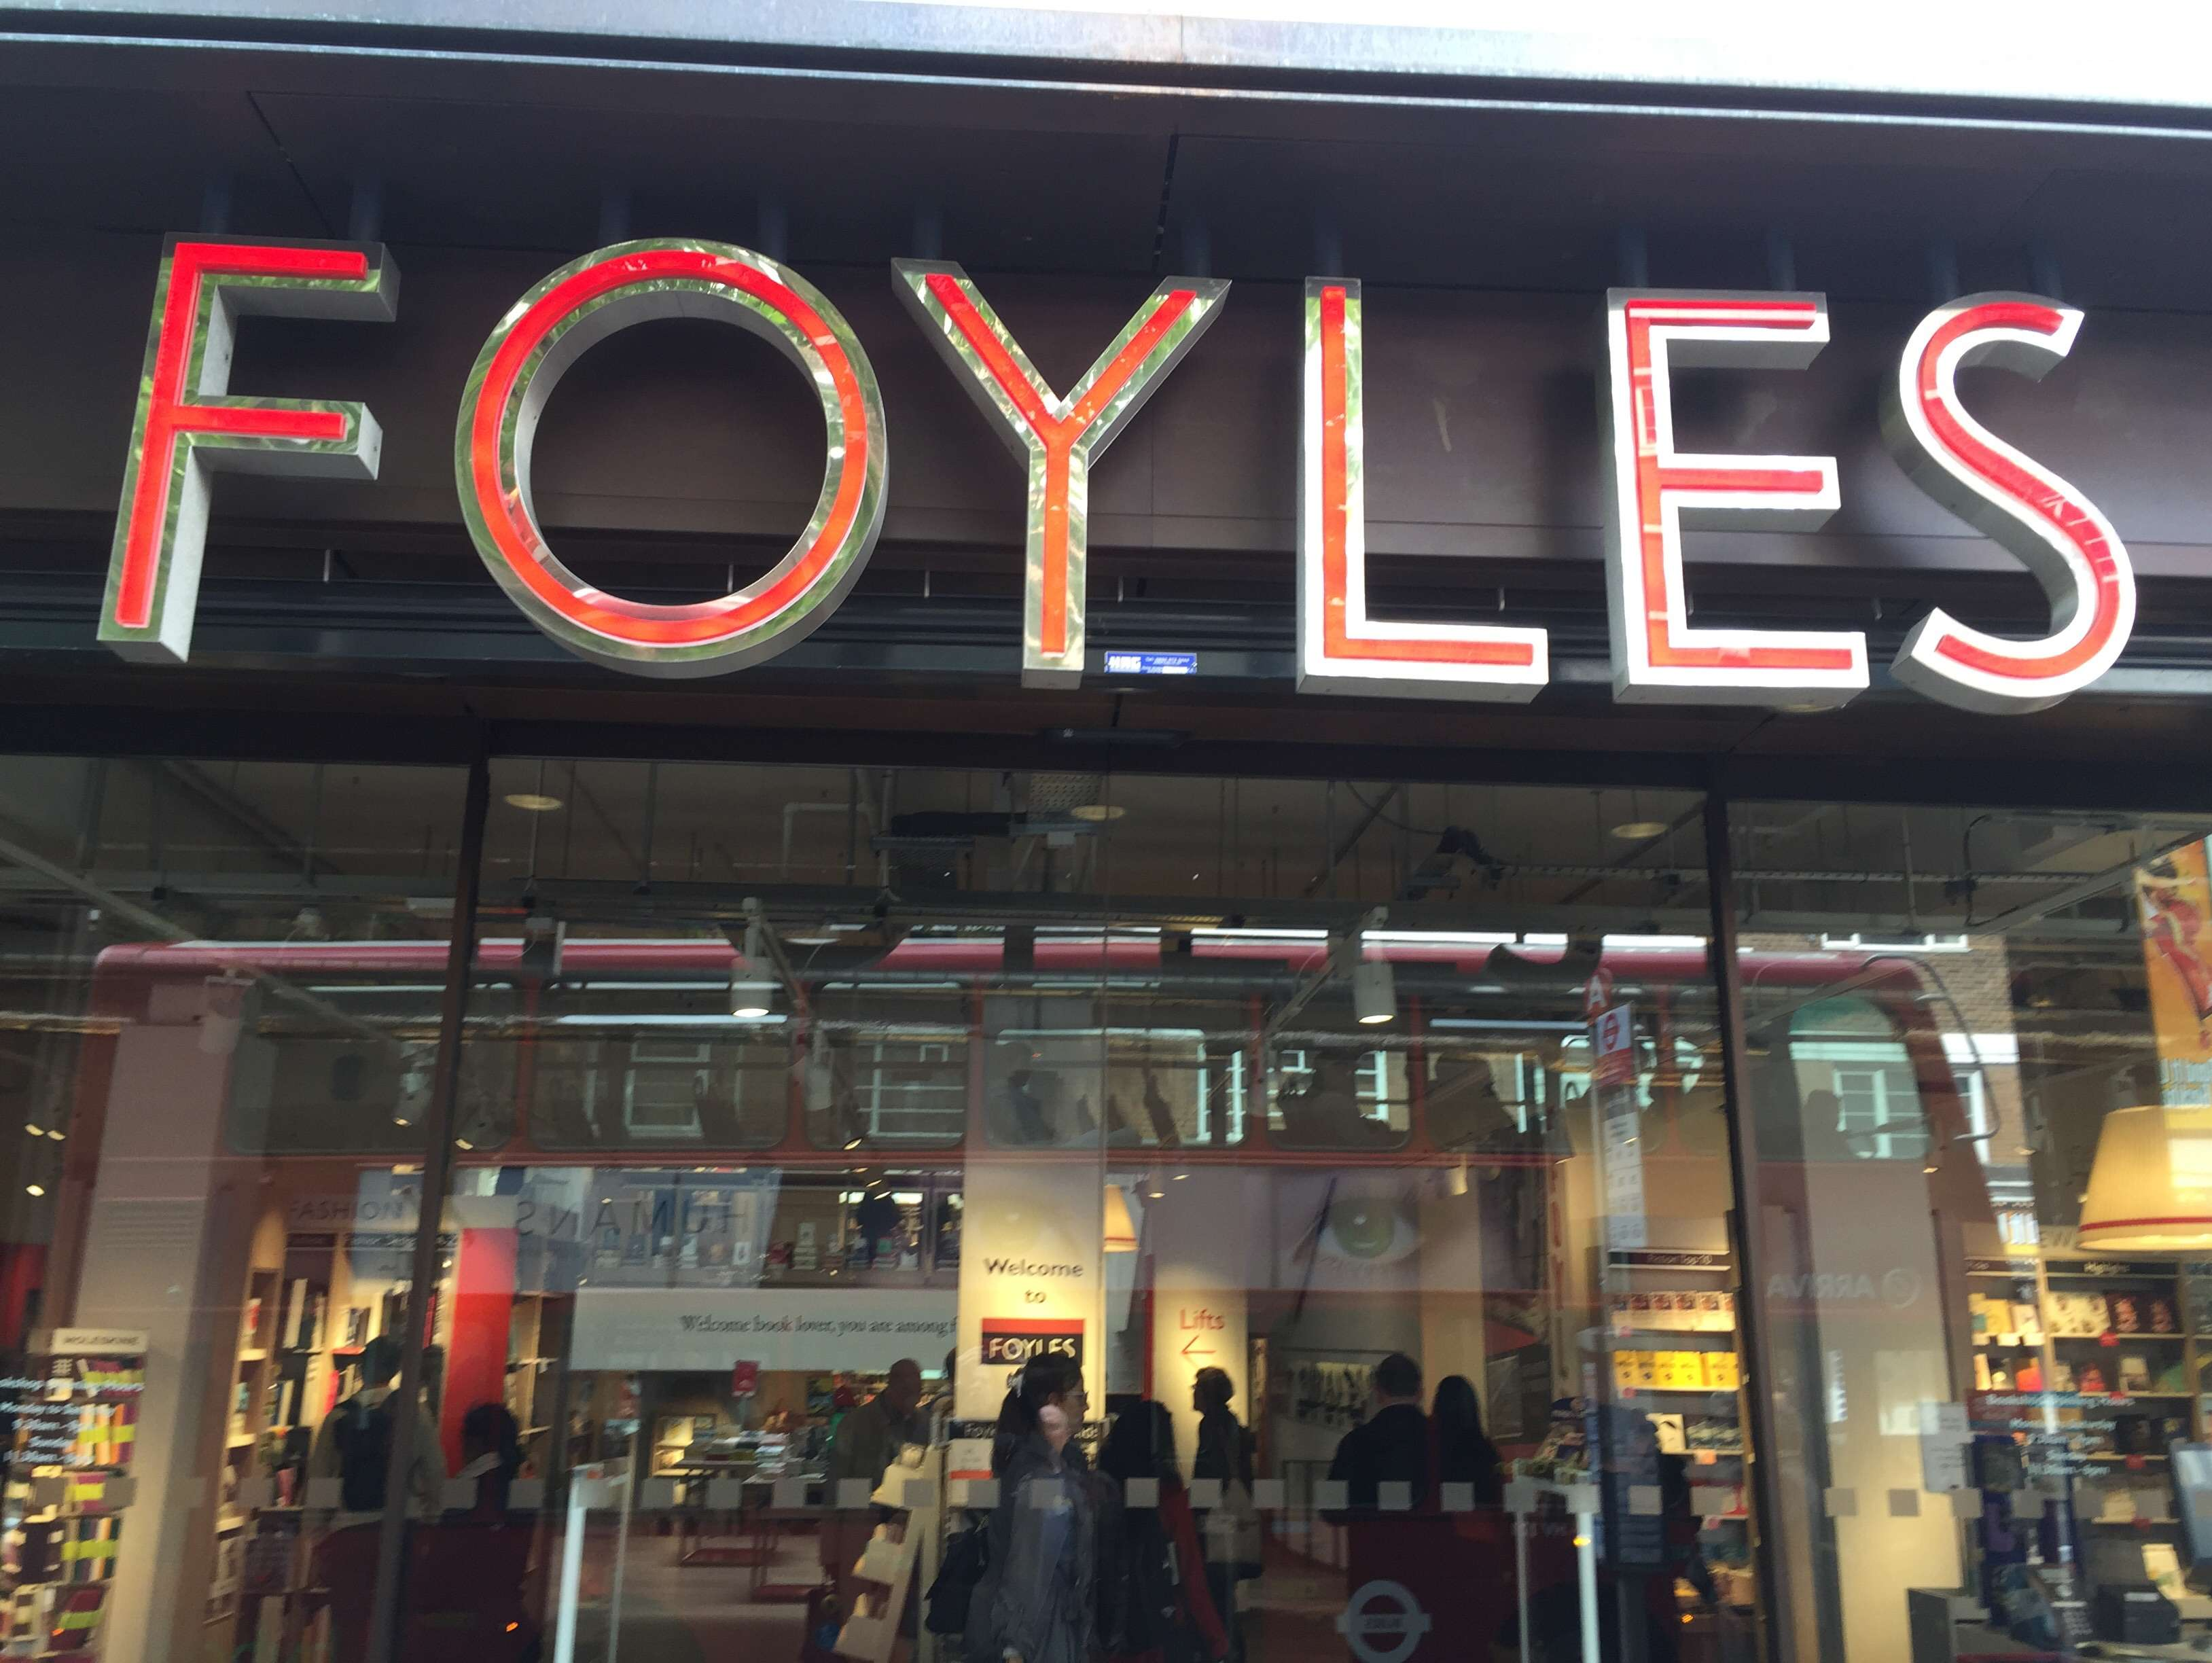 Reasons to live it large in London, England. - Foyles bookshop